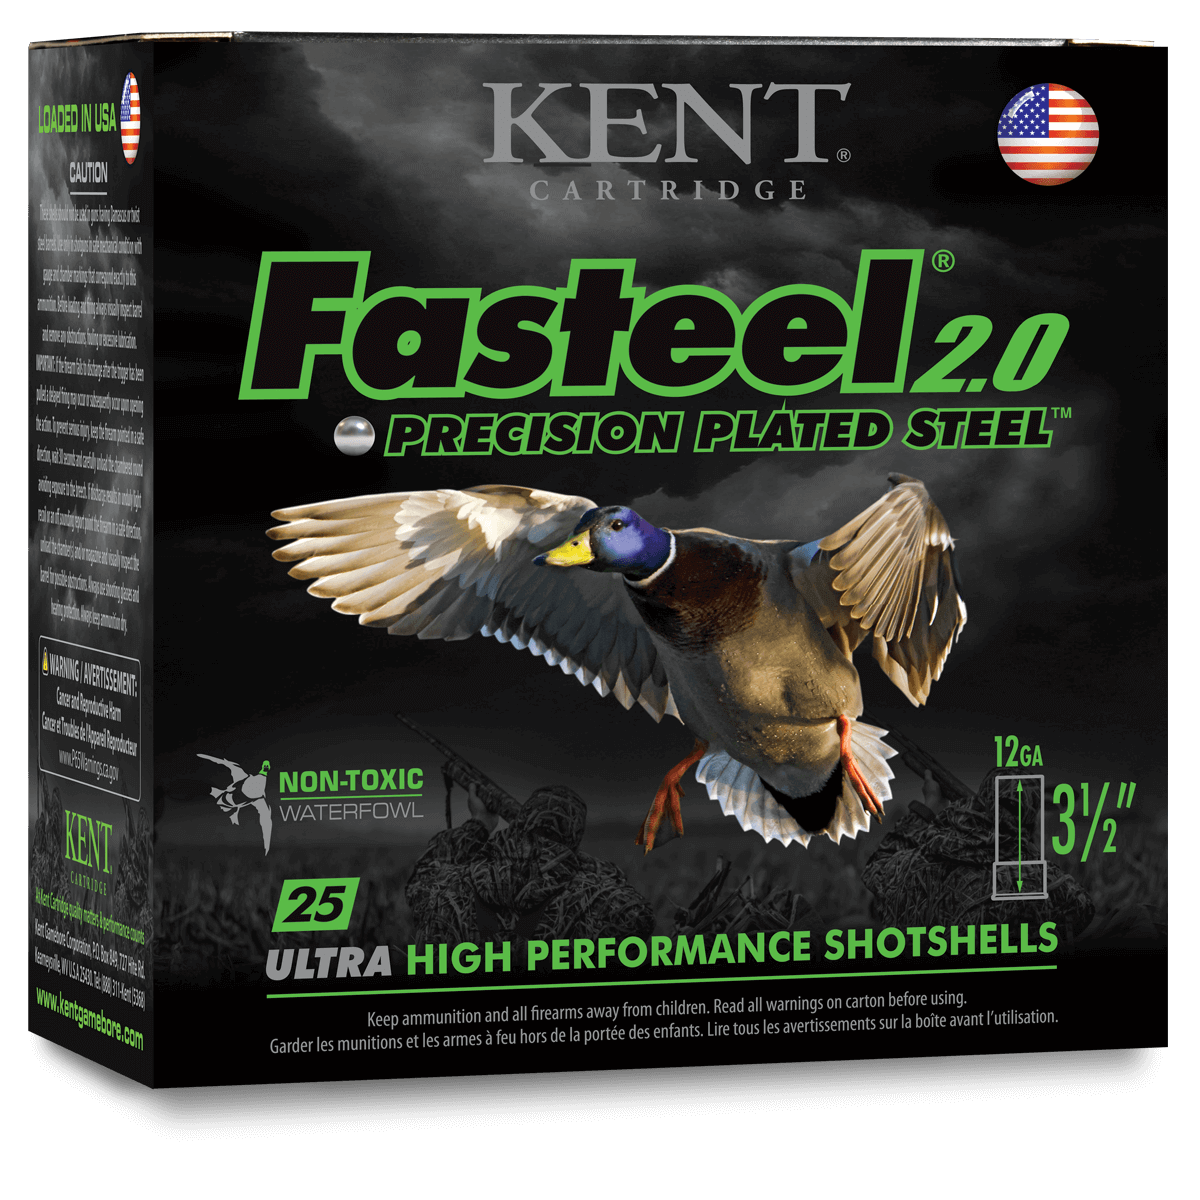 Fasteel® 2.0 Precision Plated Steel™ Waterfowl